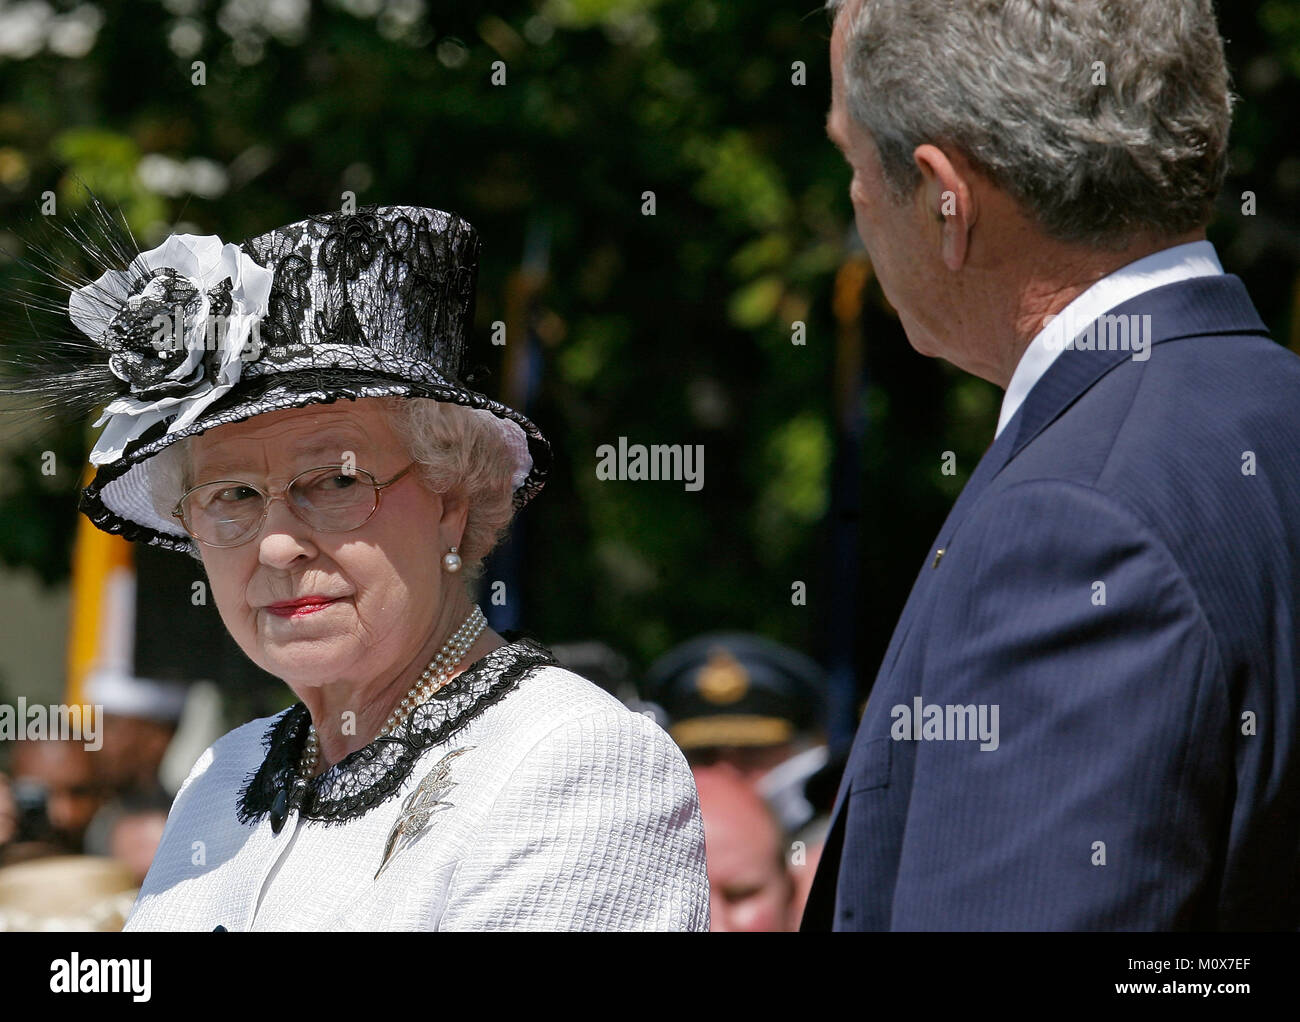 WASHINGTON - MAY 07:  (AFP OUT) HRH Queen Elizabeth II (L) and U.S. President George W. Bush take part in a ceremony - Stock Image